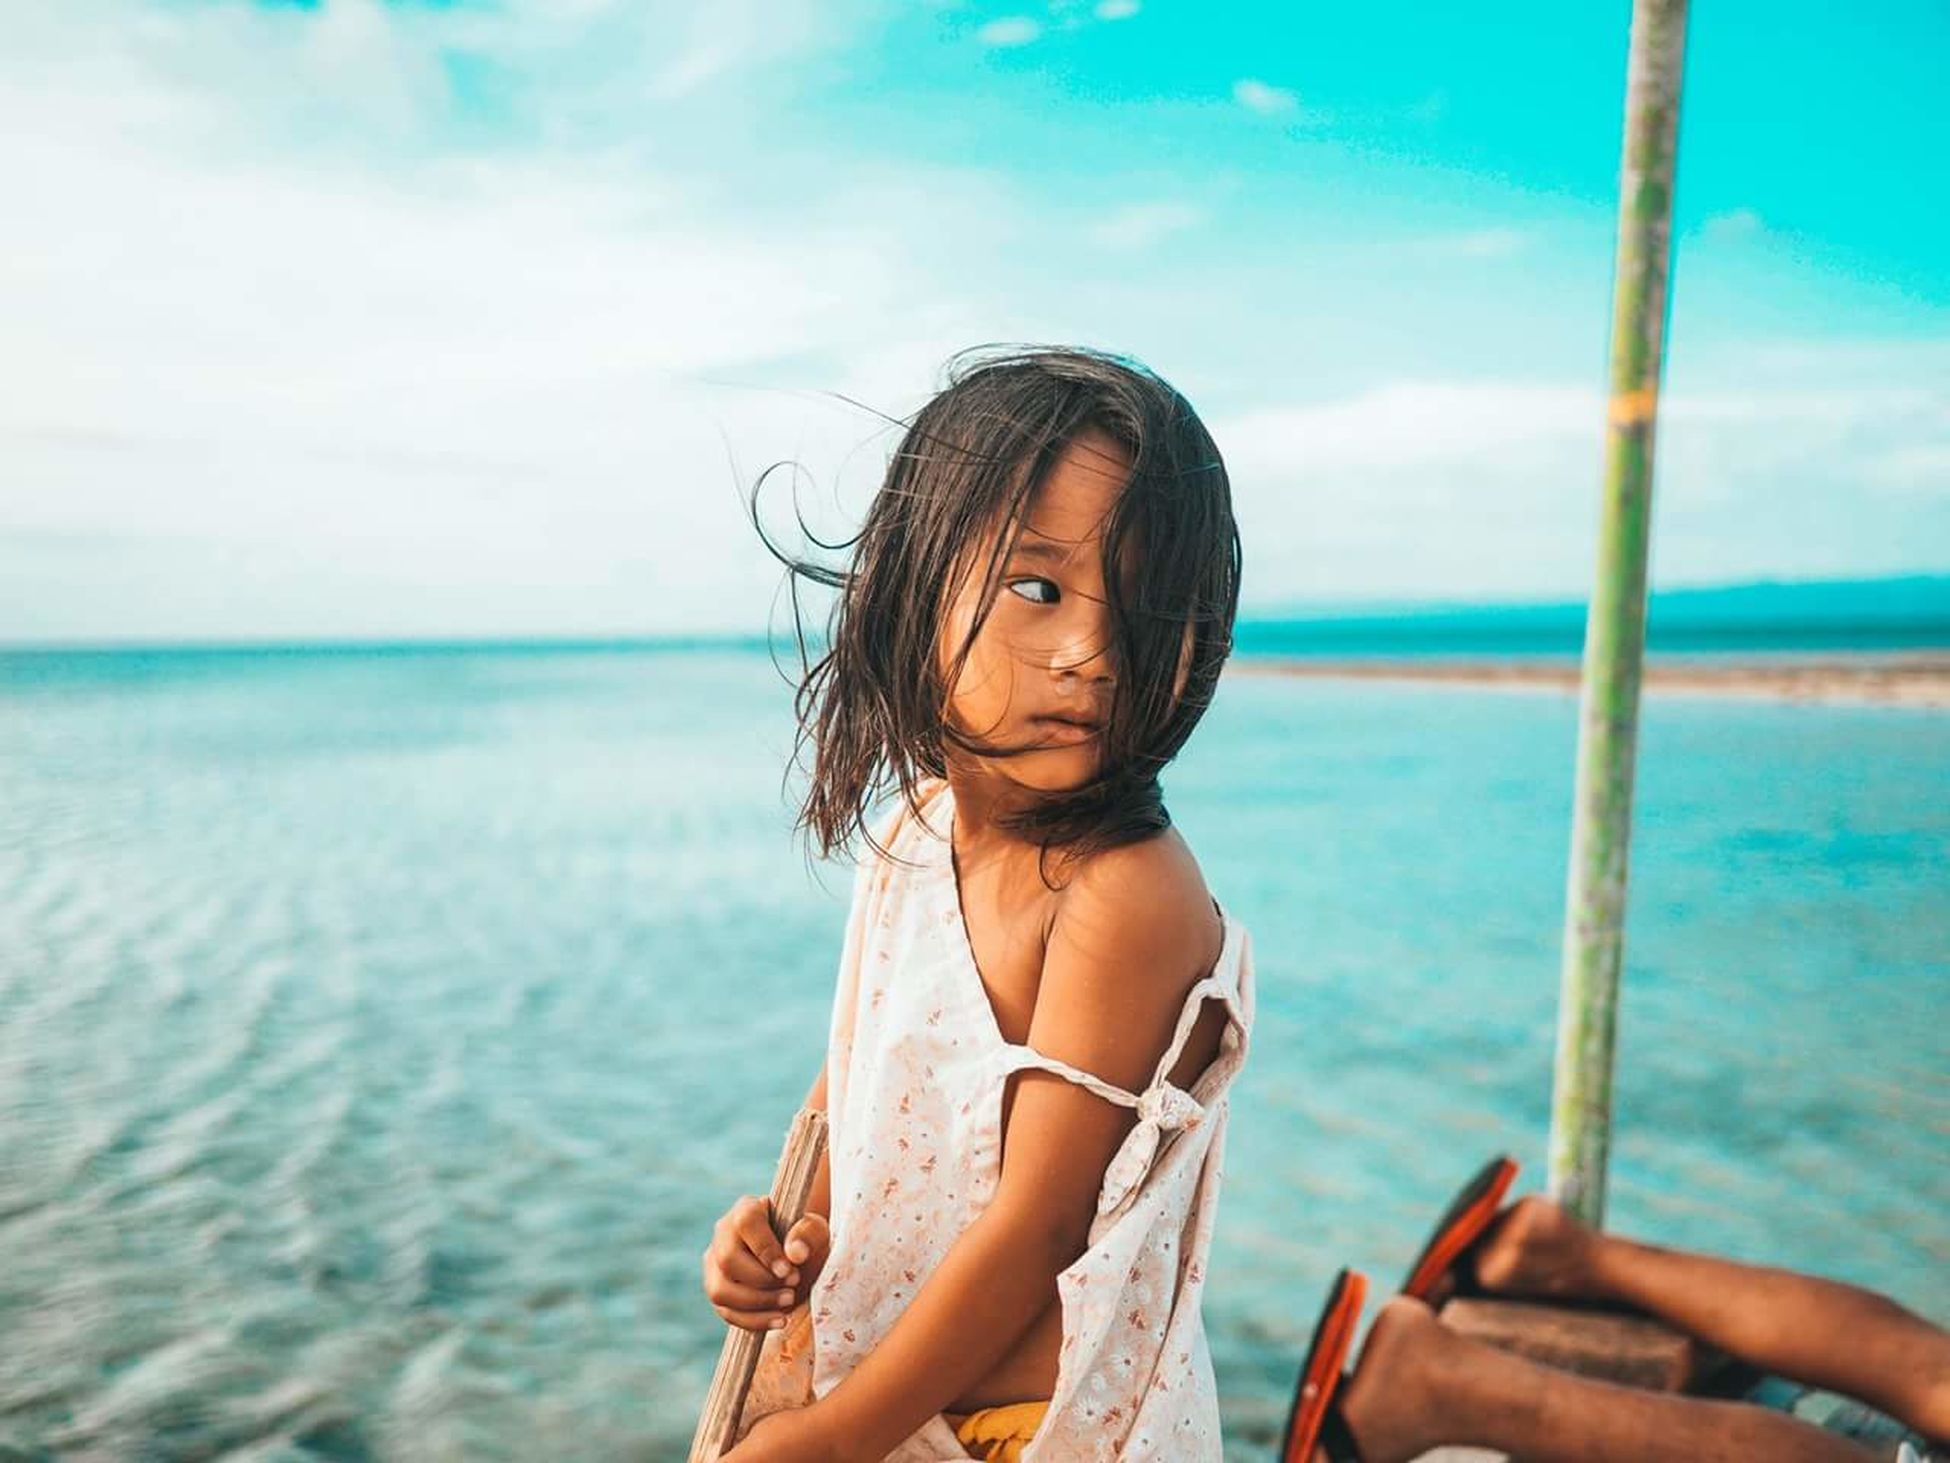 Sea Beach Water Summer Child Vacations Bikini Girls Children Only Cloud - Sky People One Person One Girl Only Outdoors Motion Nature Sky Day Beauty In Nature Portrait Justinvawtershot